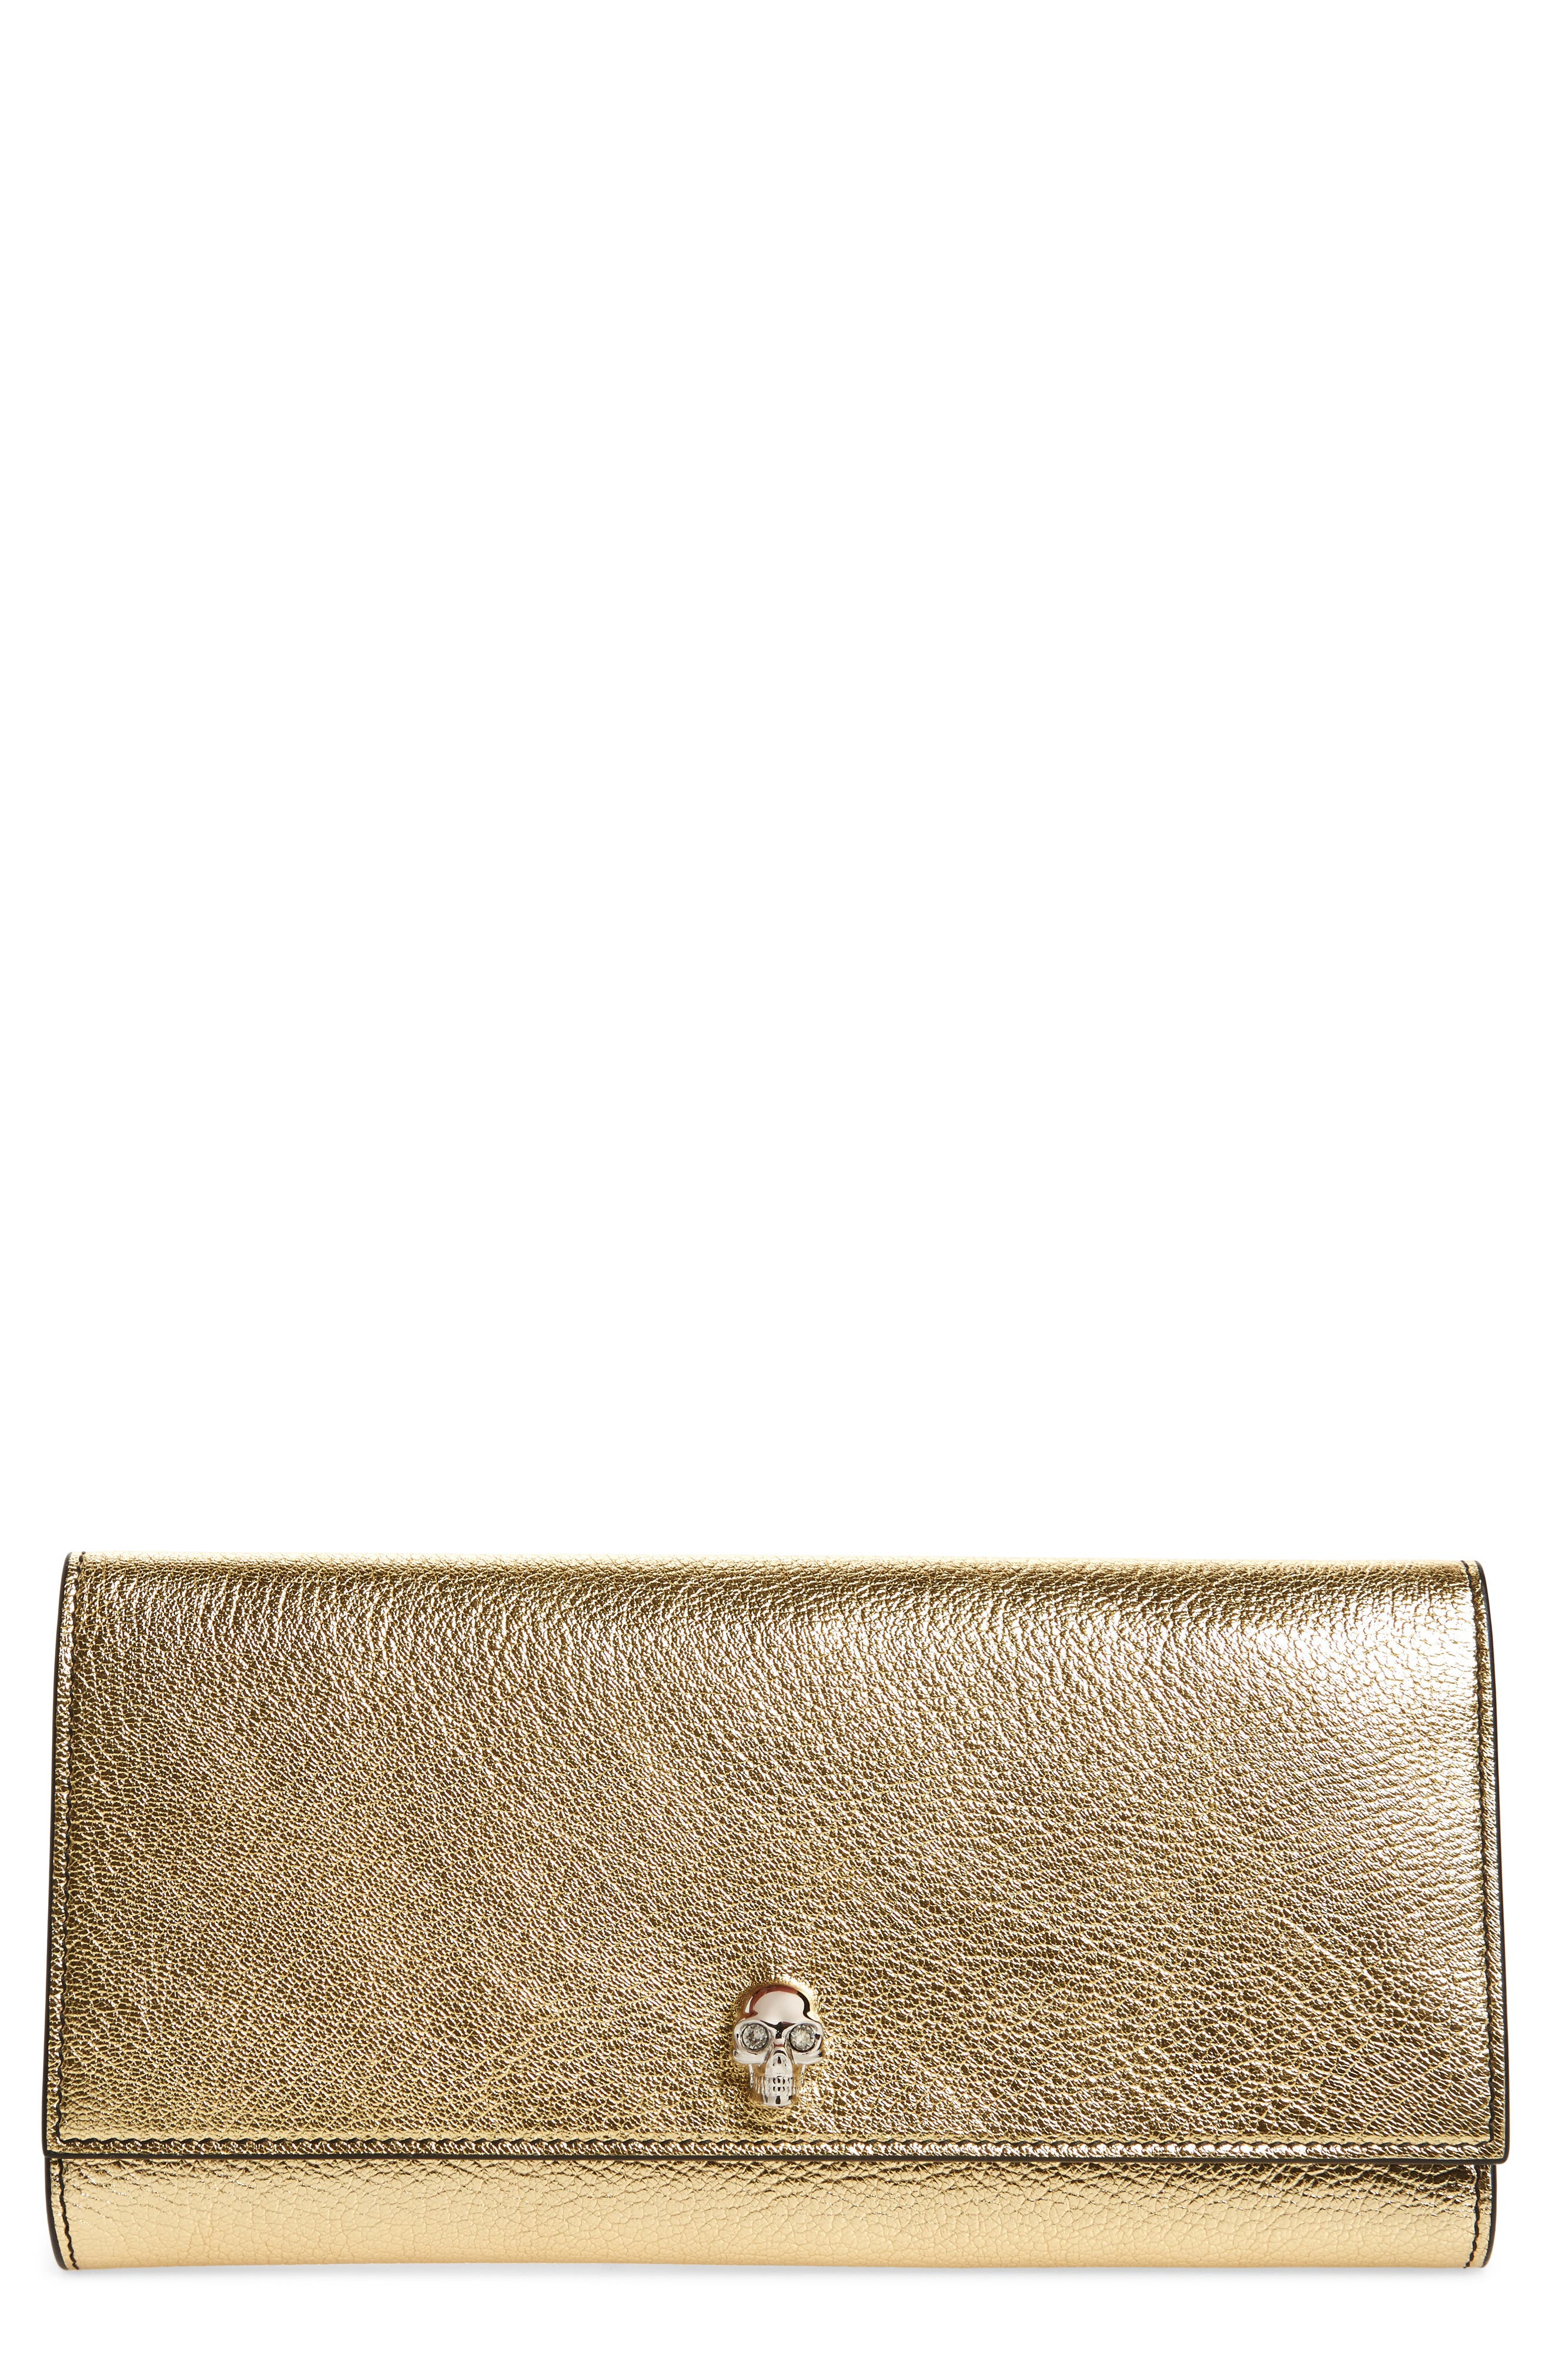 Leather Travel Wallet,                         Main,                         color, 710